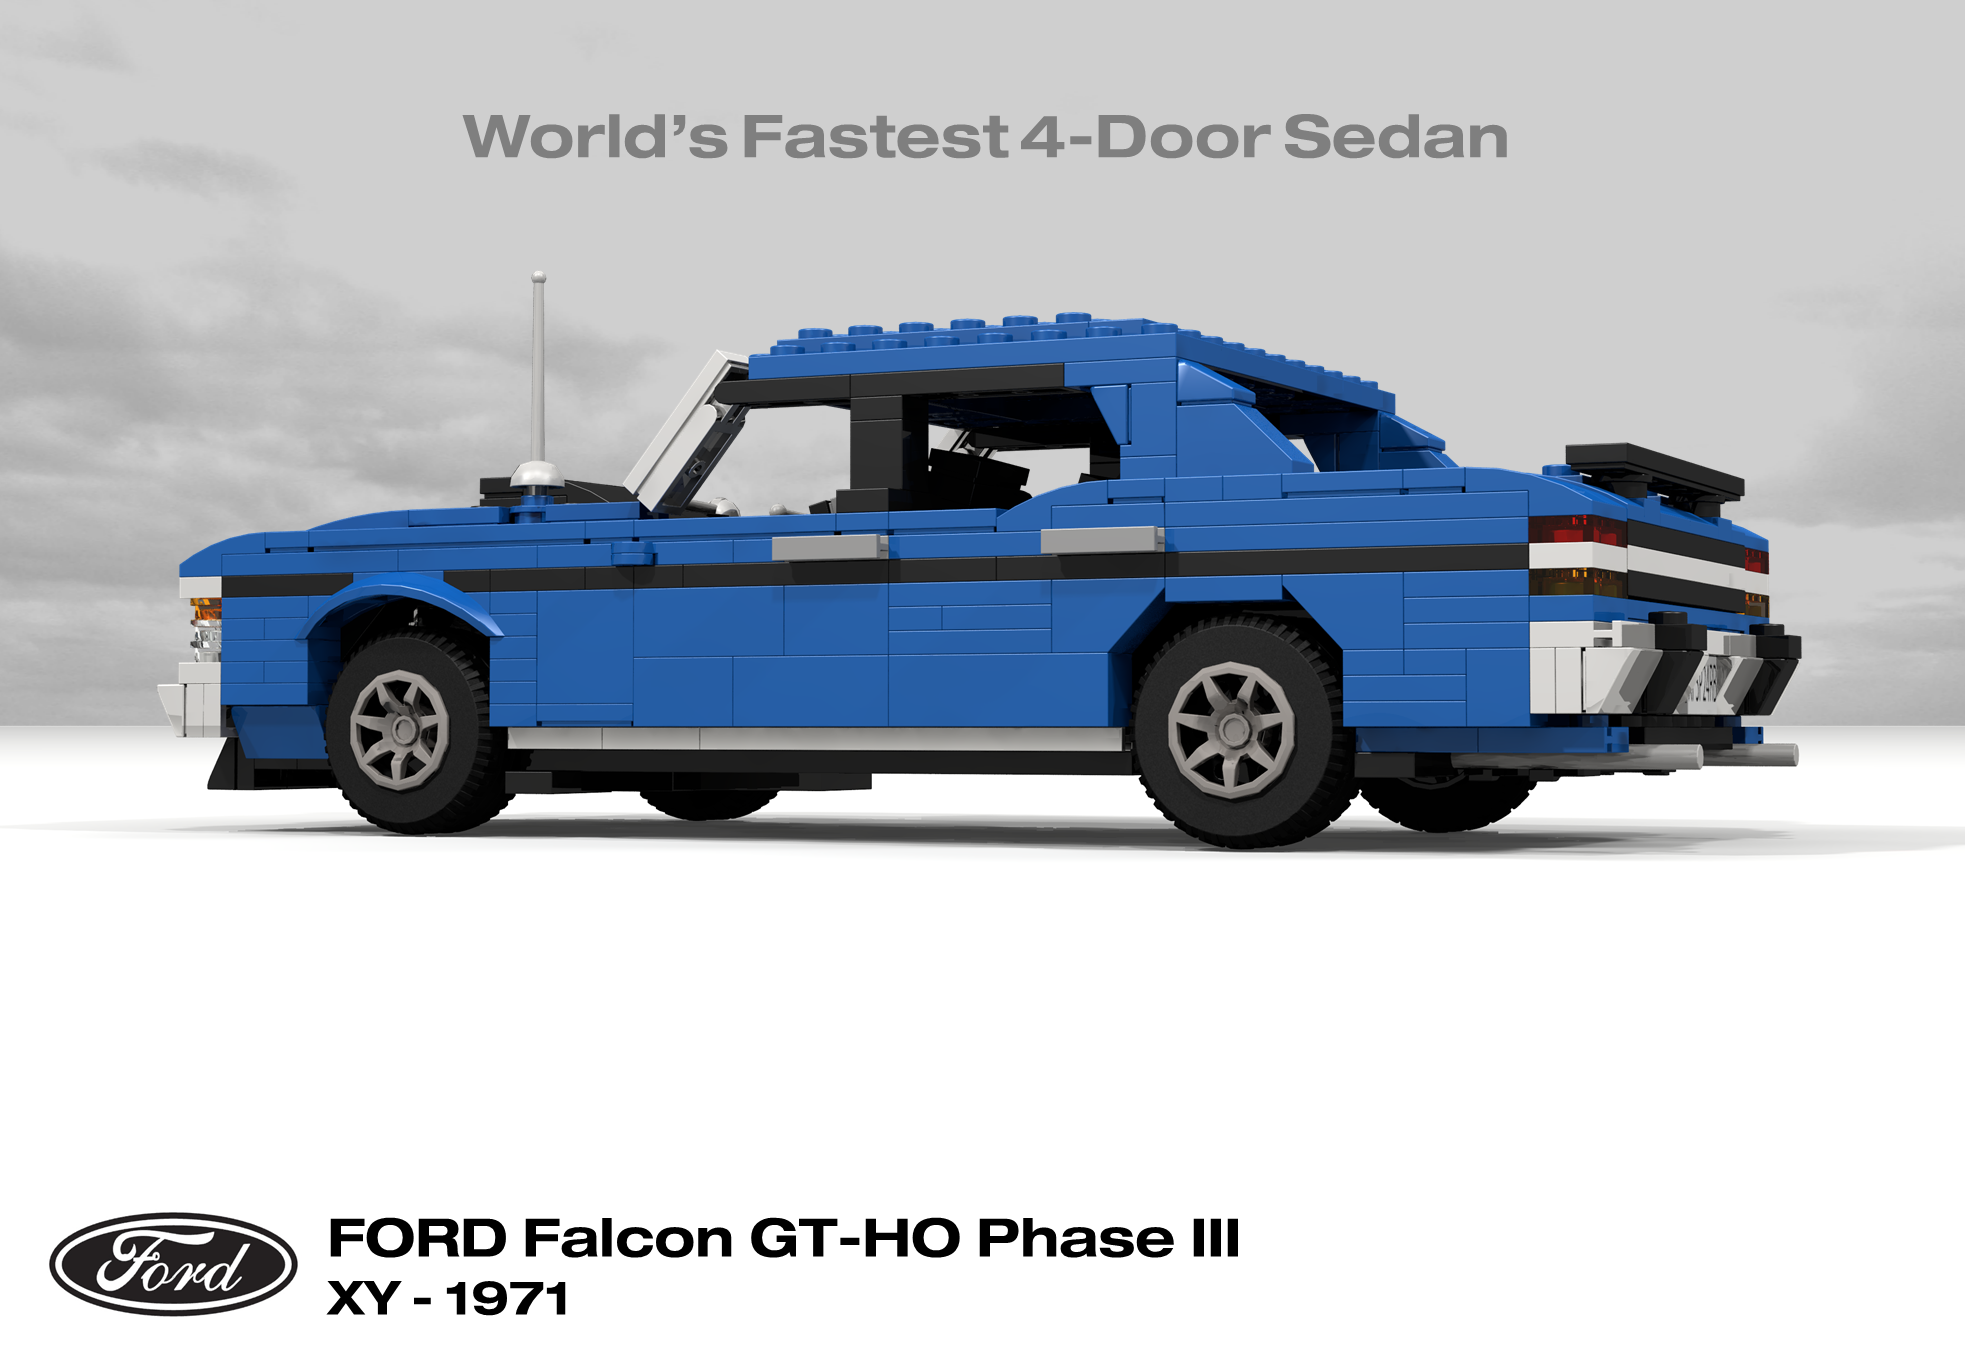 ford_falcon_xy_gt-ho_phase_iii_19.png